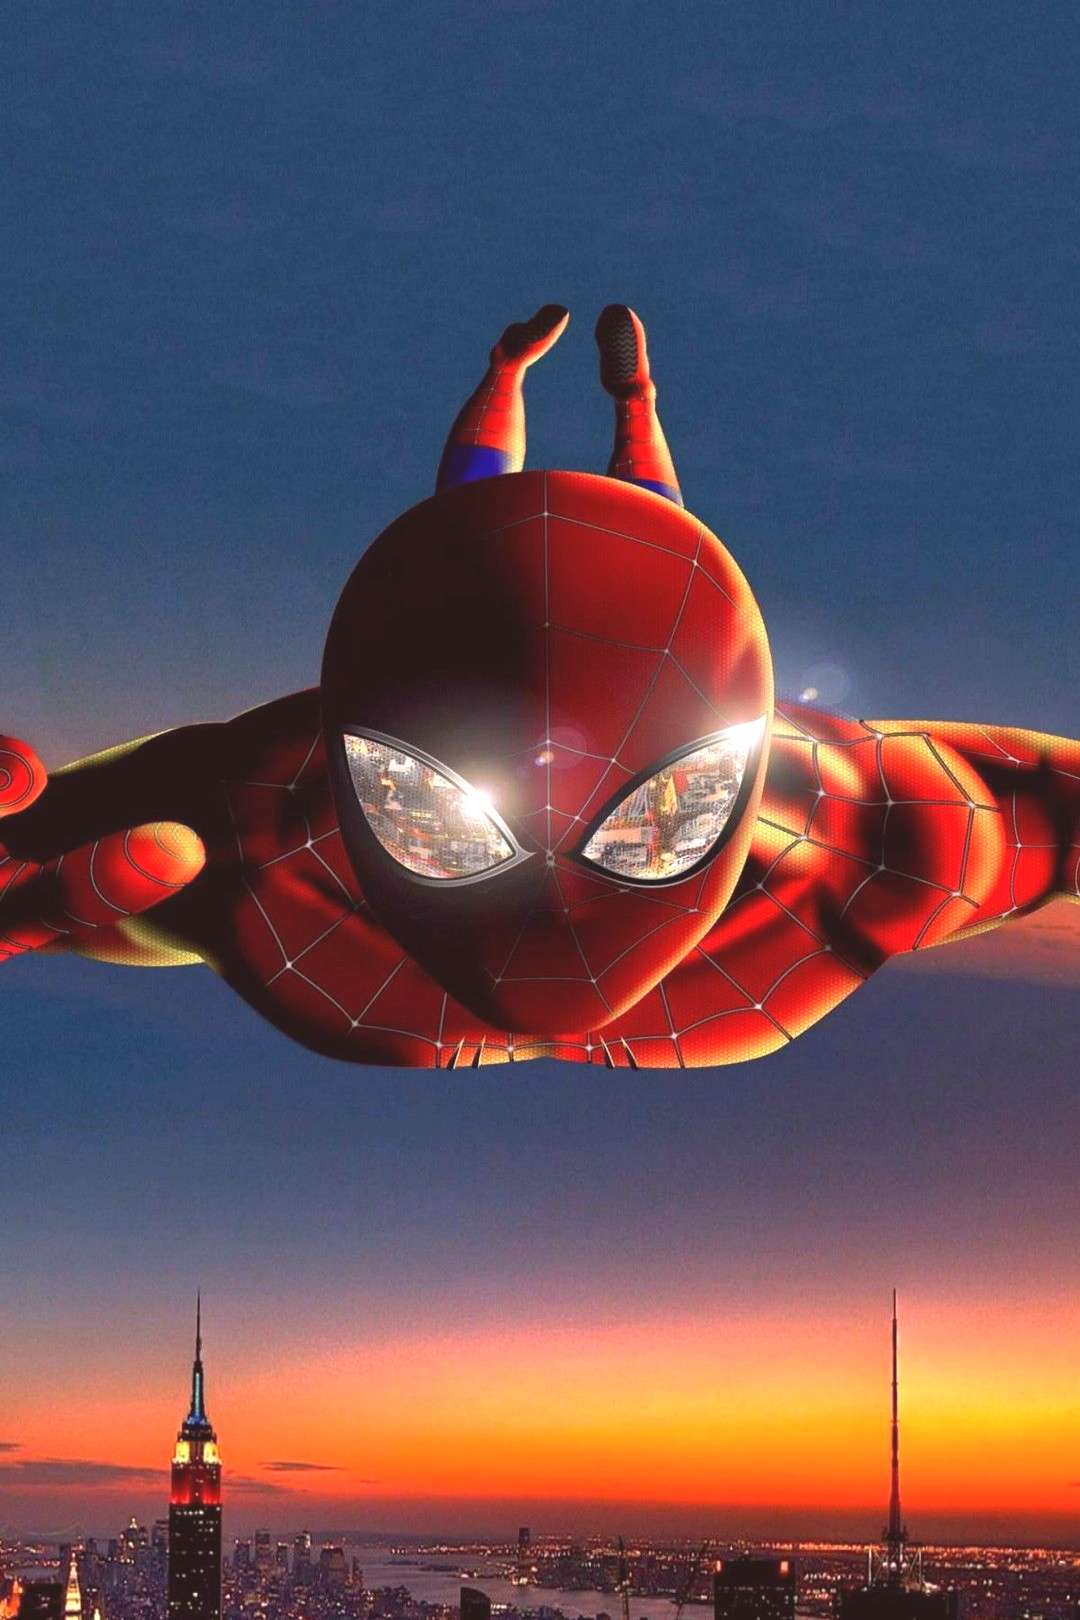 Spider-Man 2019 Far From Home Poster HD - Best Movie Poster HD -  Spider-Man 2019 Far From Home Pos